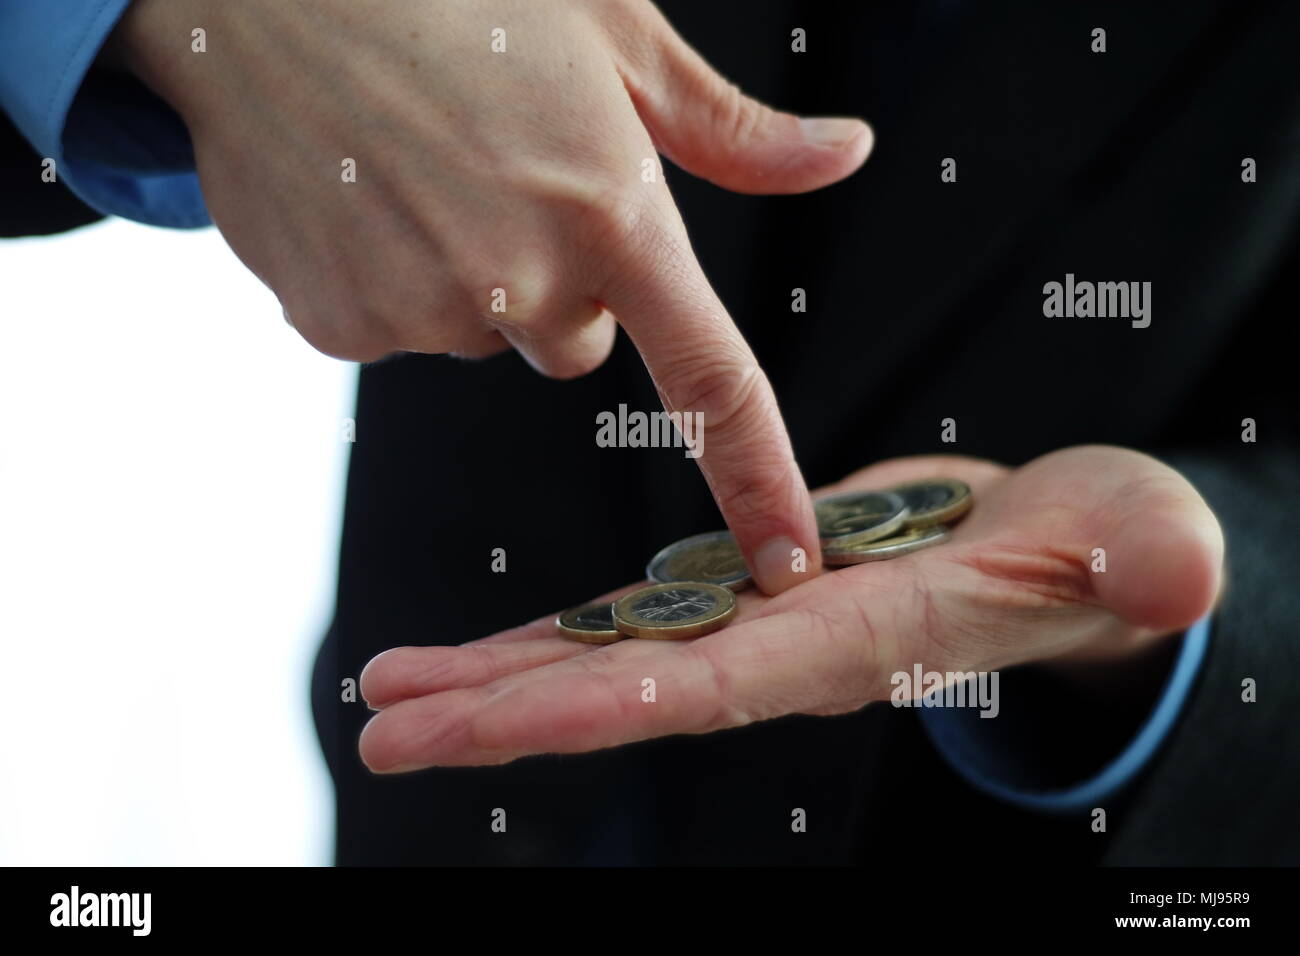 Coins in hand - Stock Image